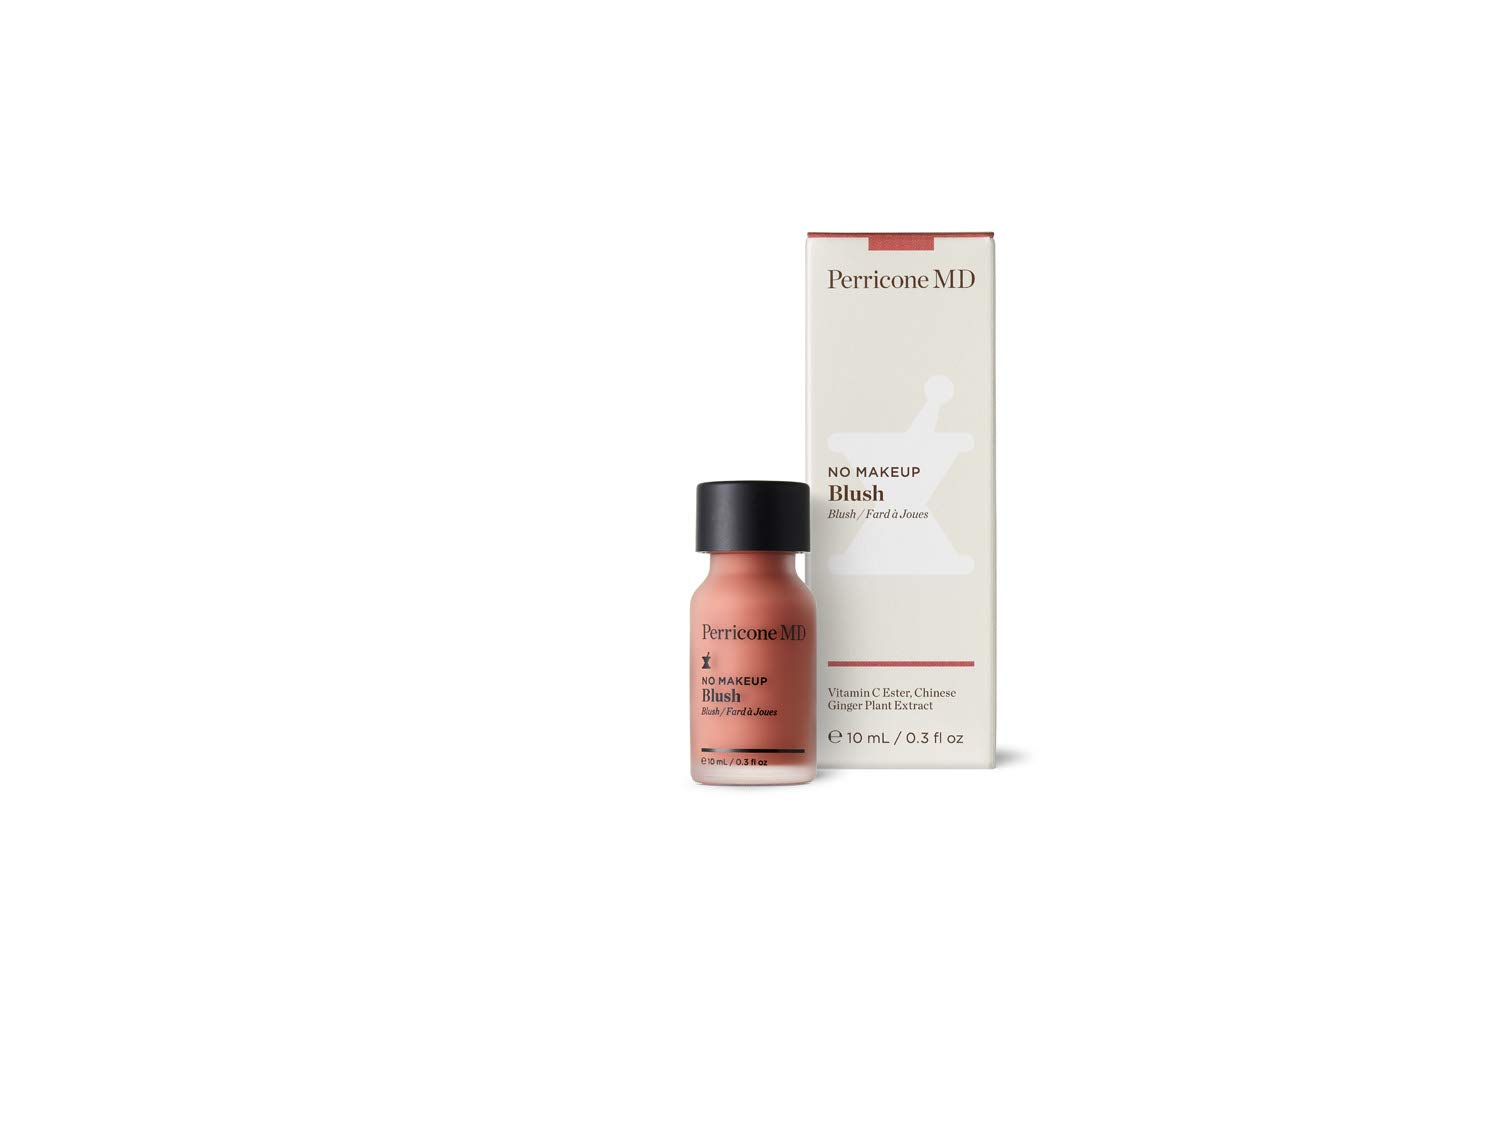 No Makeup Blush by Perricone MD